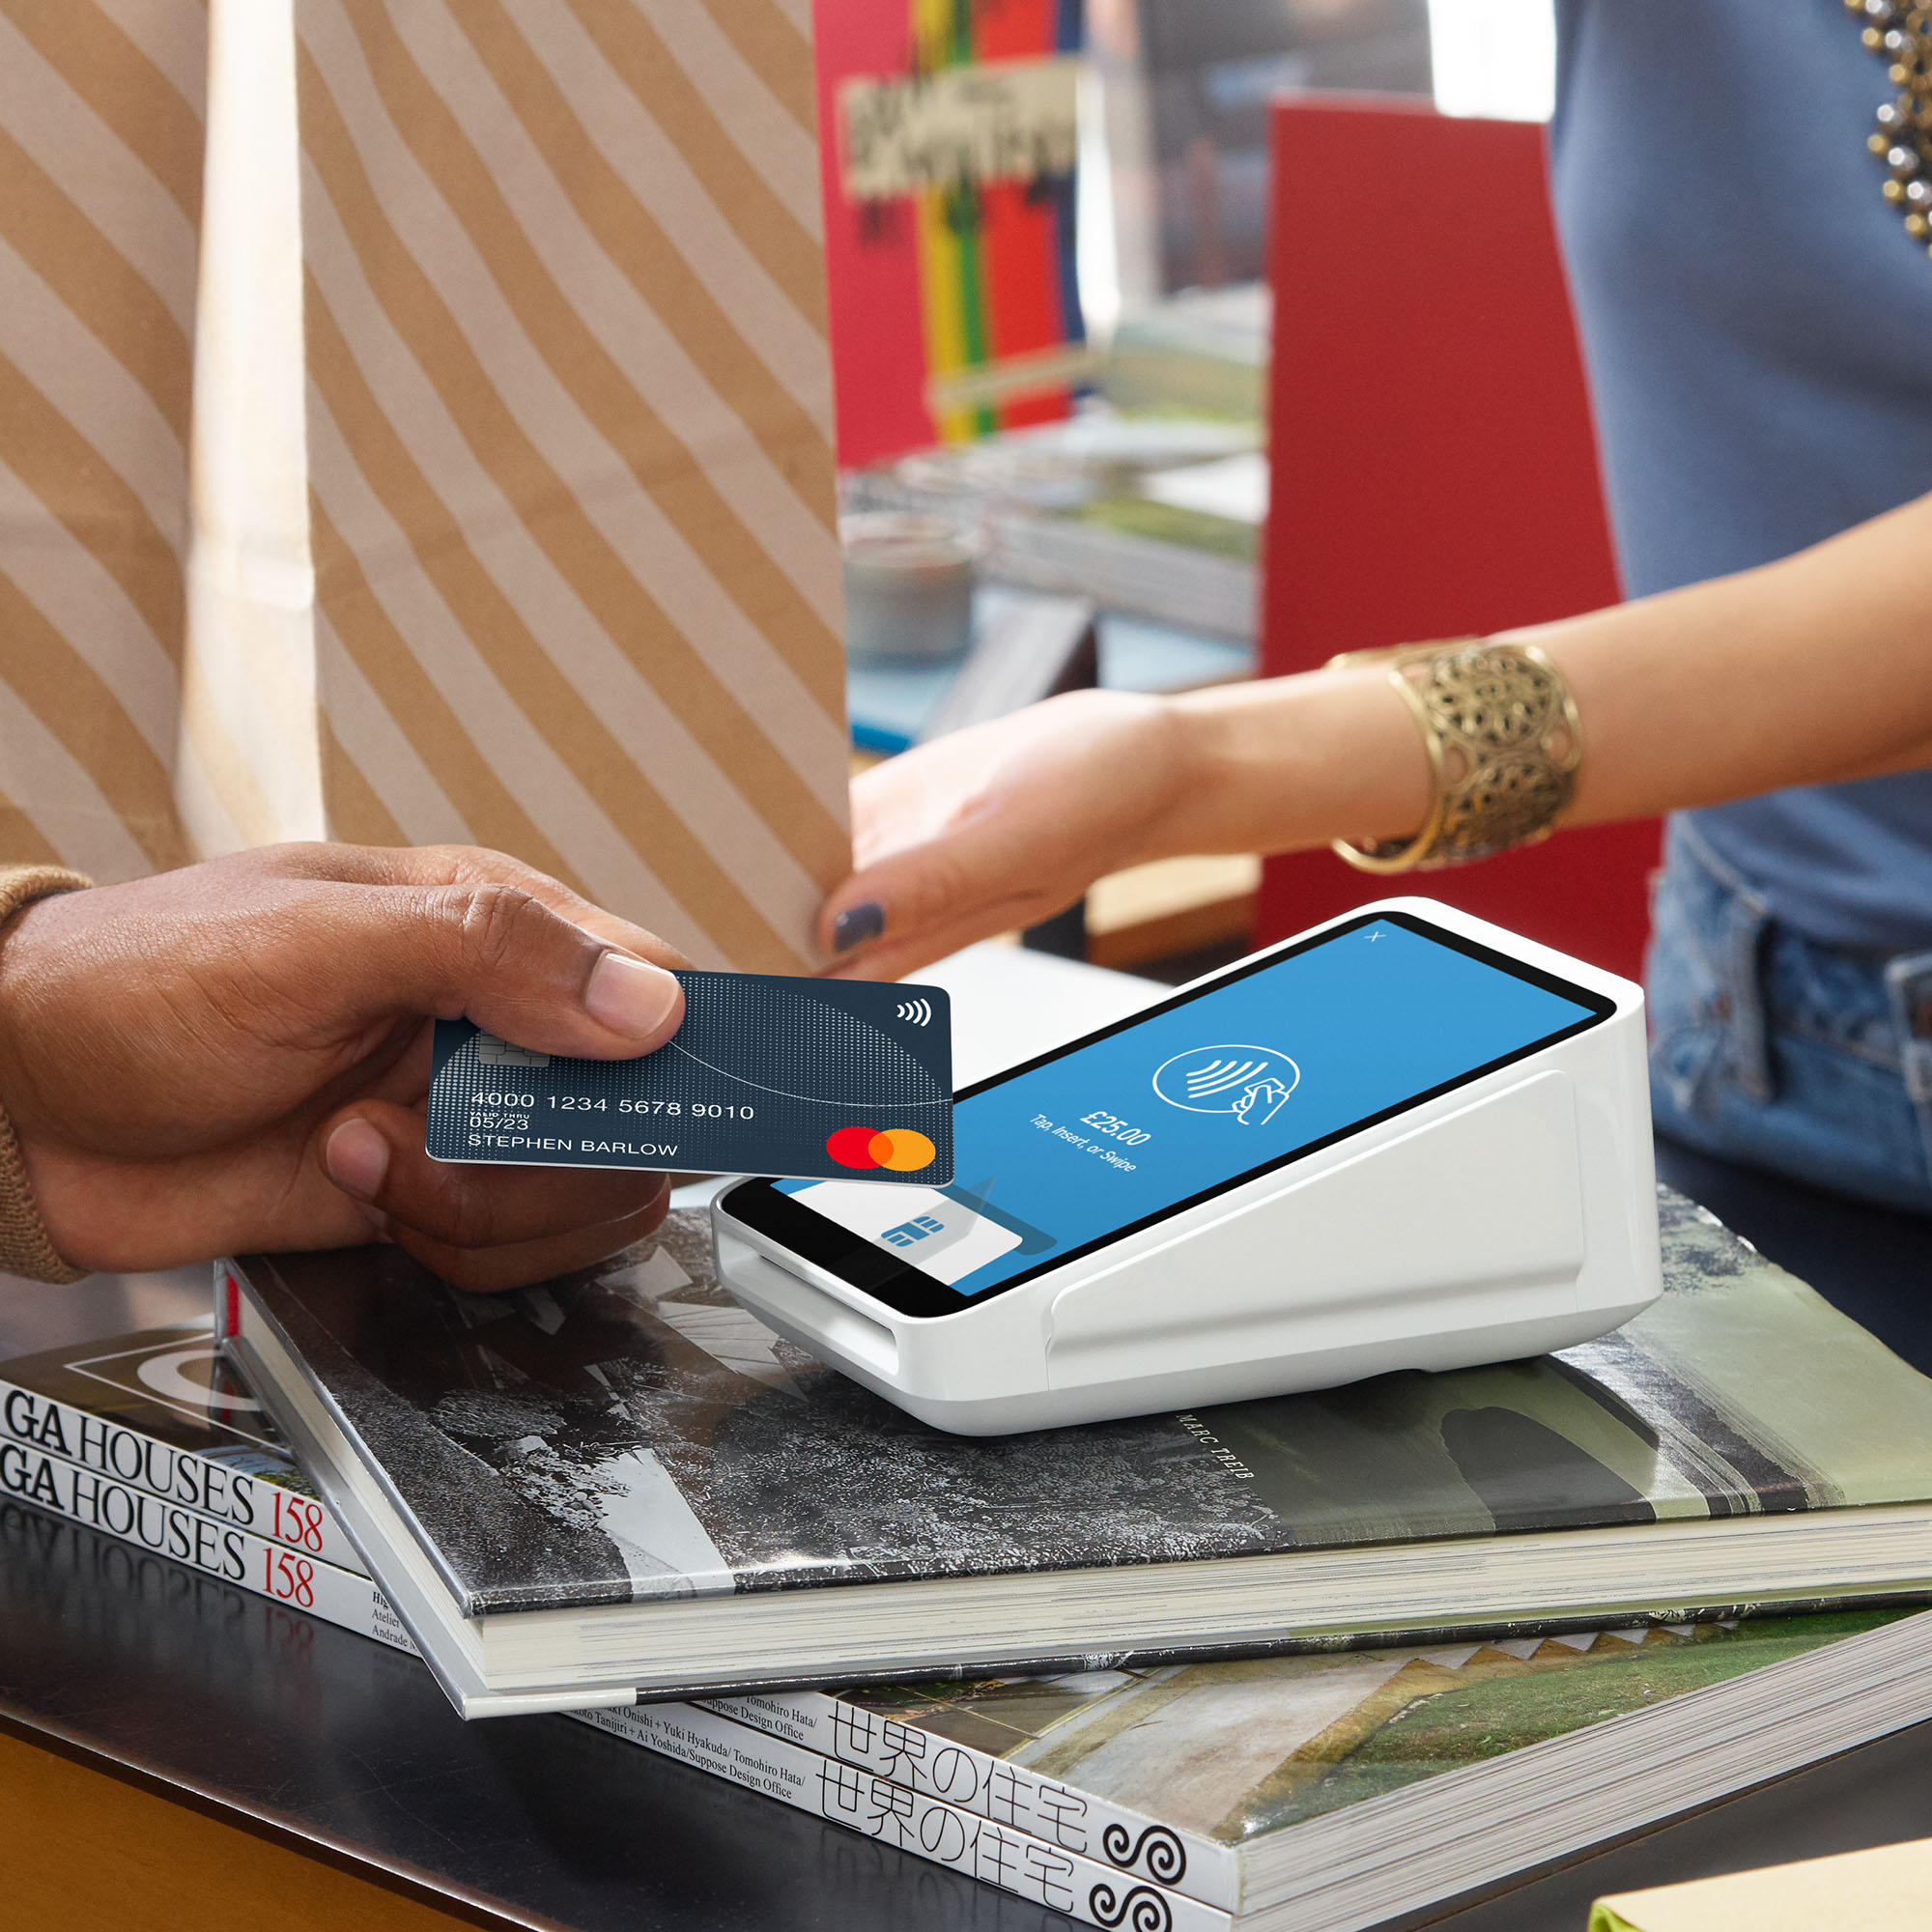 Square Terminal All-in-one device Accepts Chip/PIN/Contactless/Apple Pay/Google Pay Ref A-SKU-0568